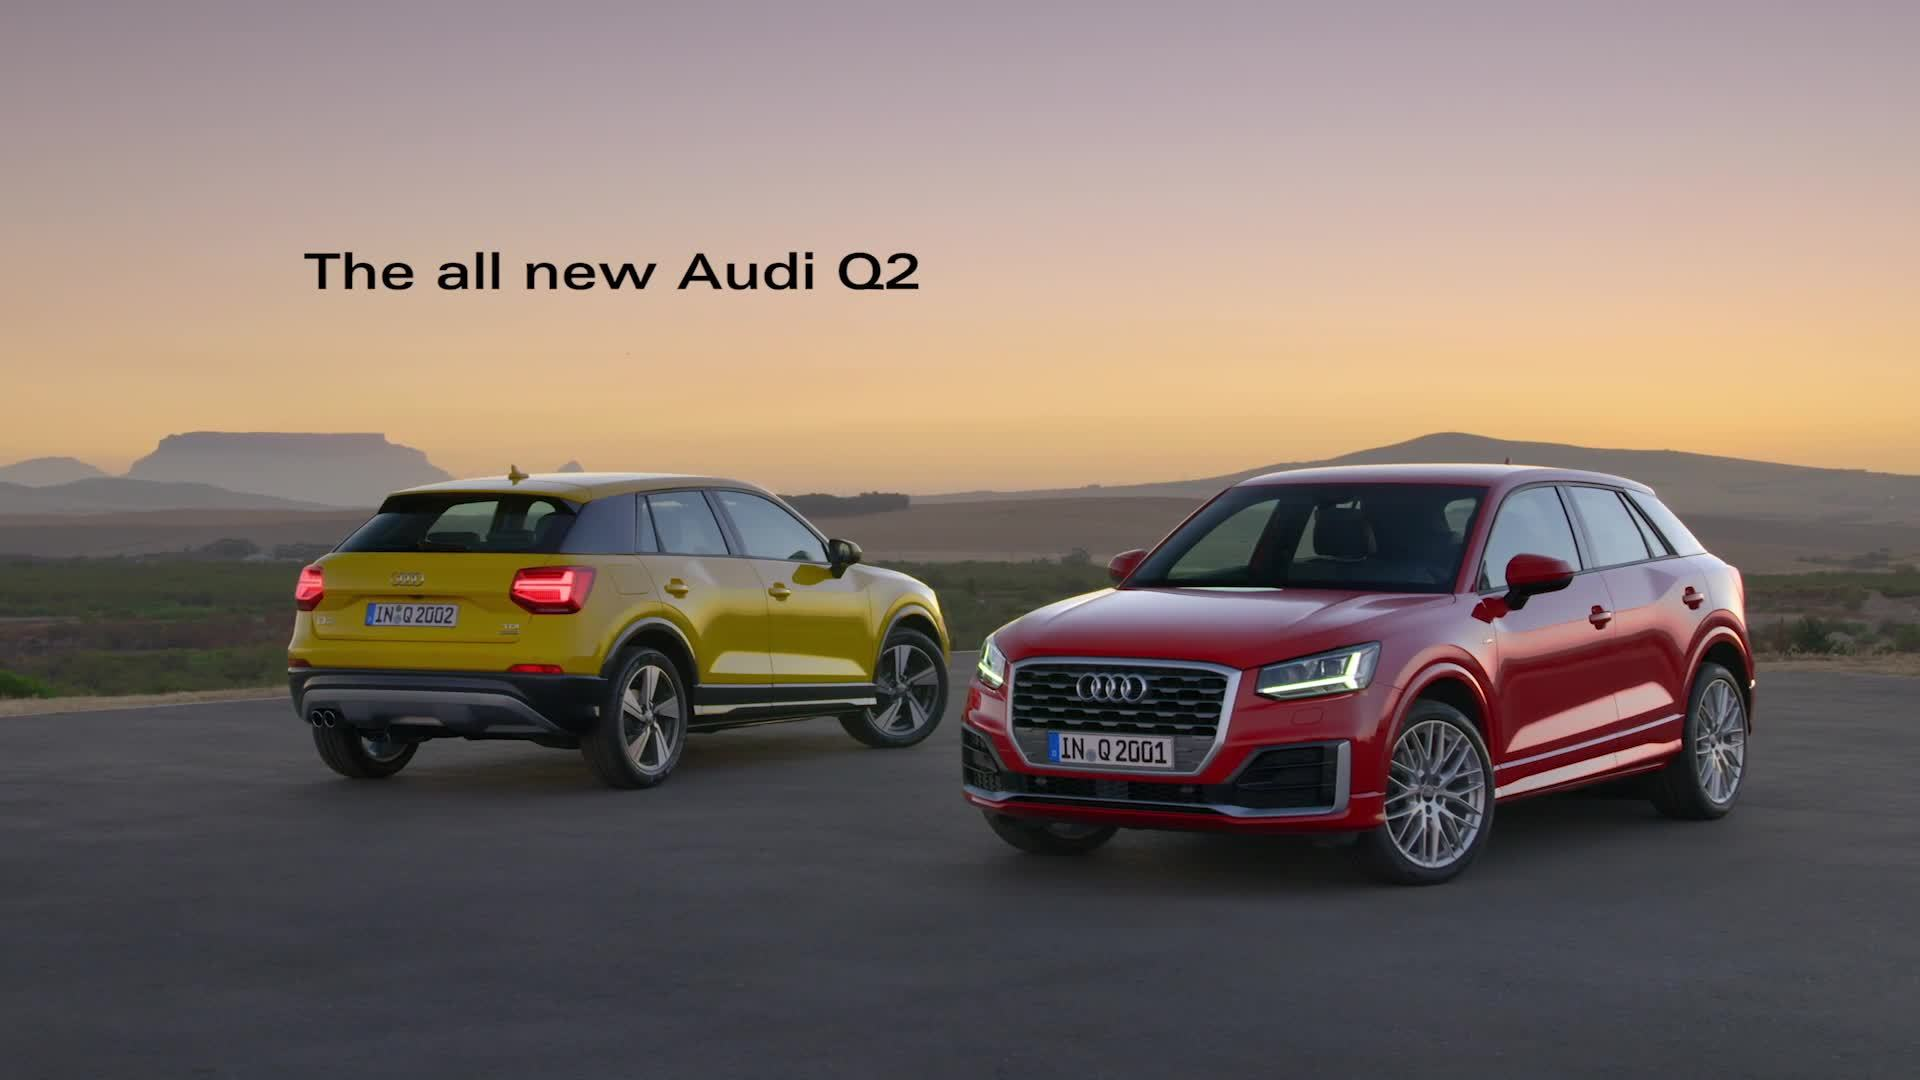 The compact city SUV - The new Audi Q2